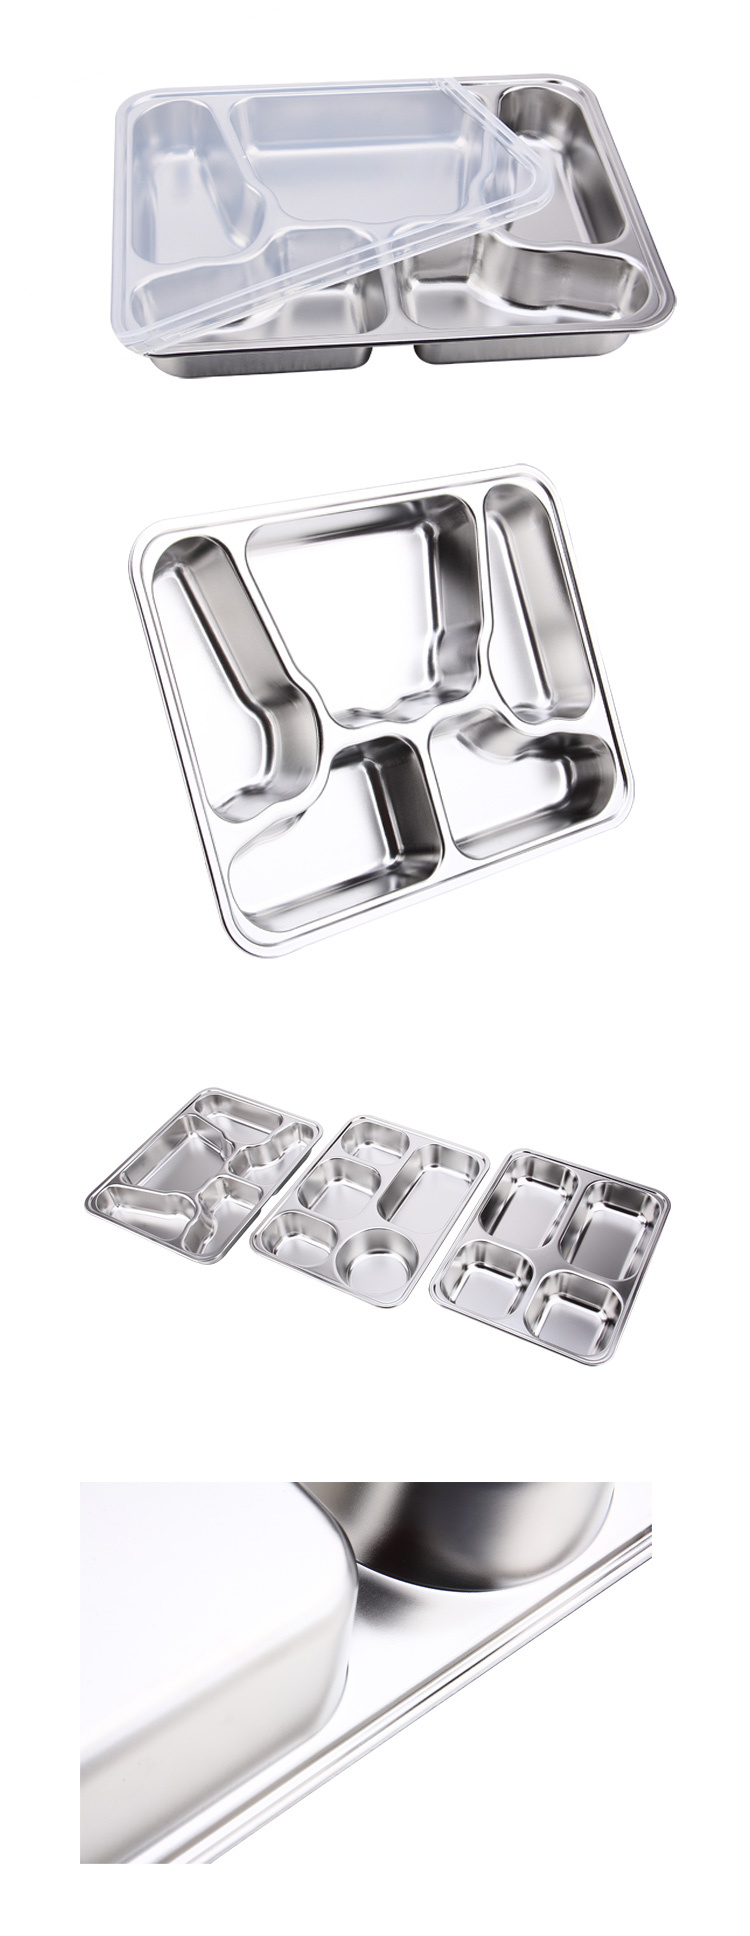 Wholesale Stainless Steel 5 Compartment Butterfly Lunch Plate